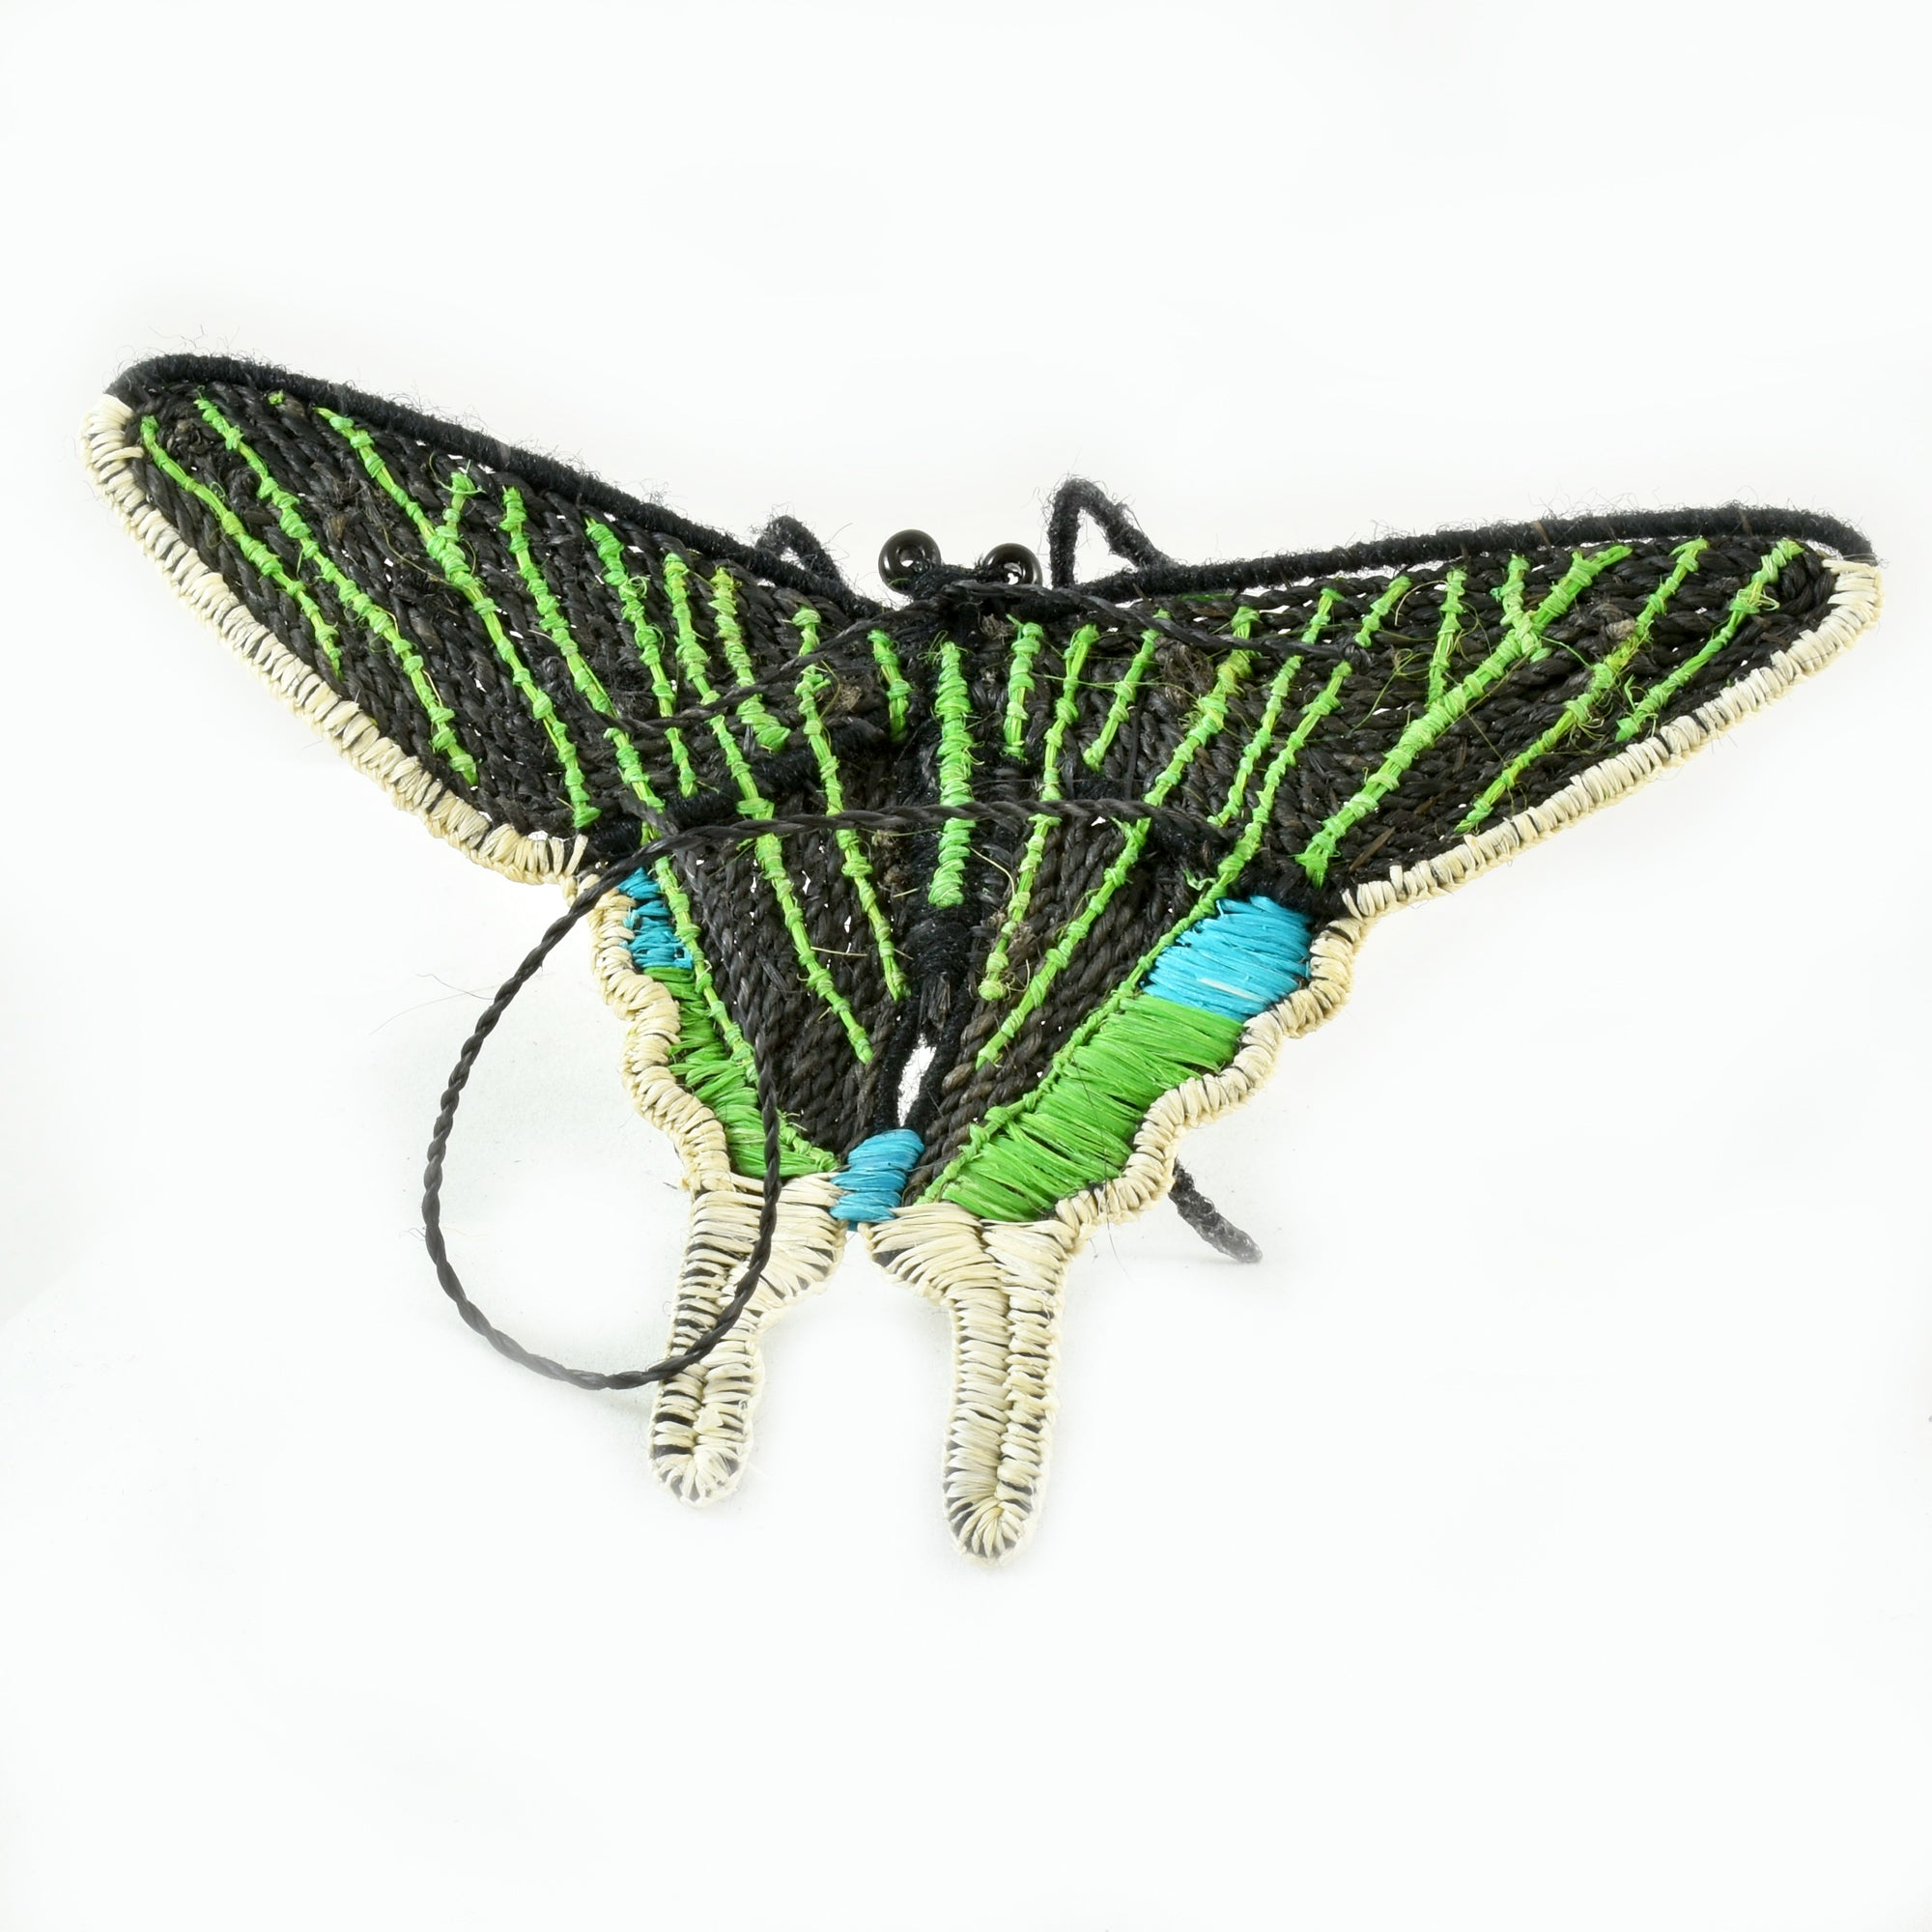 BUTTERFLY WOVEN INSECT ORNAMENT - HAND-MADE BY ARTISAN FROM THE PERUVIAN AMAZON